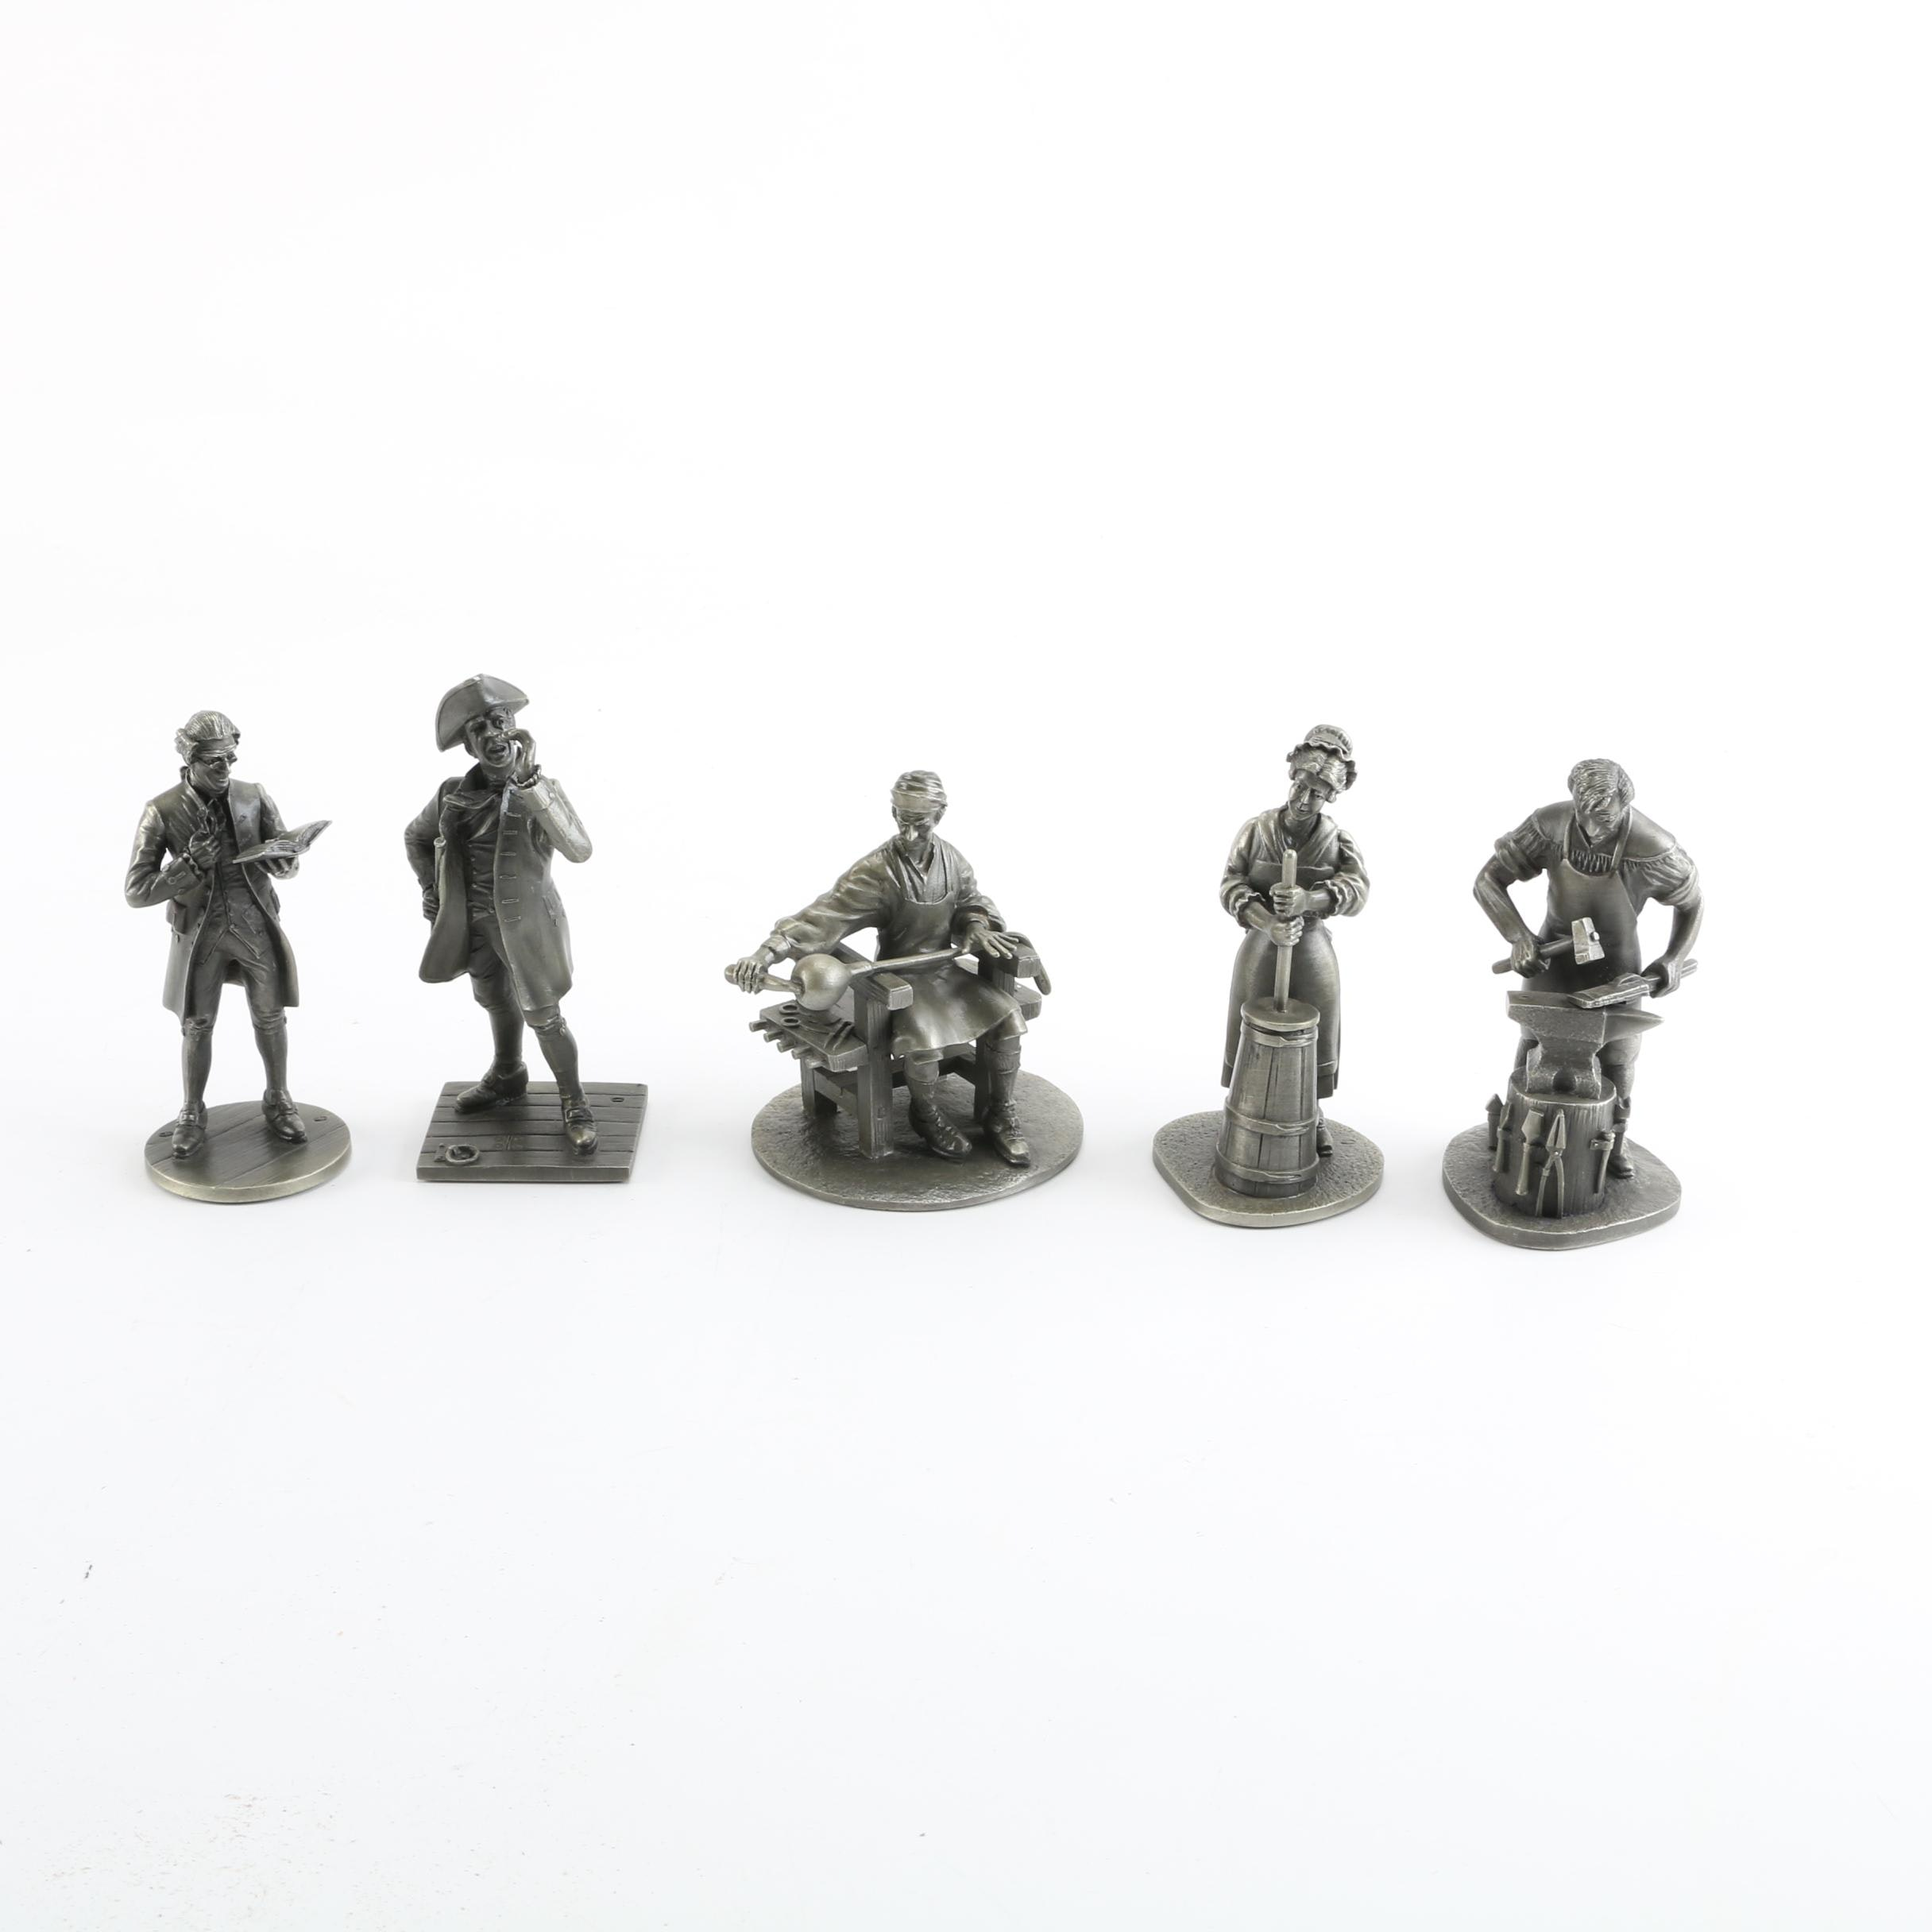 The Franklin Mint Pewter Vocational Figurines